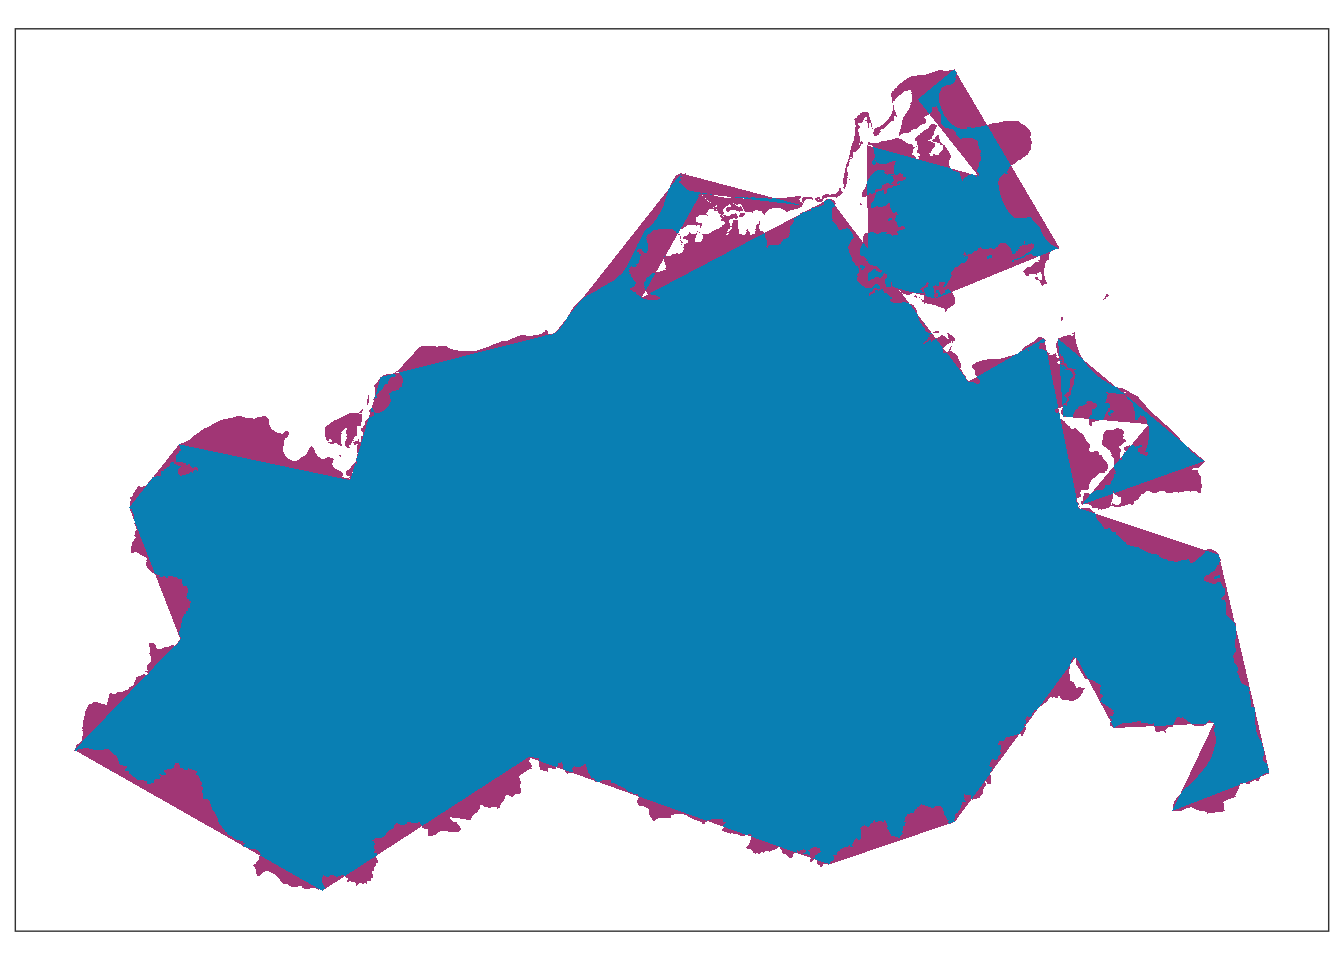 A simplified administrative boundary overlaid on the original